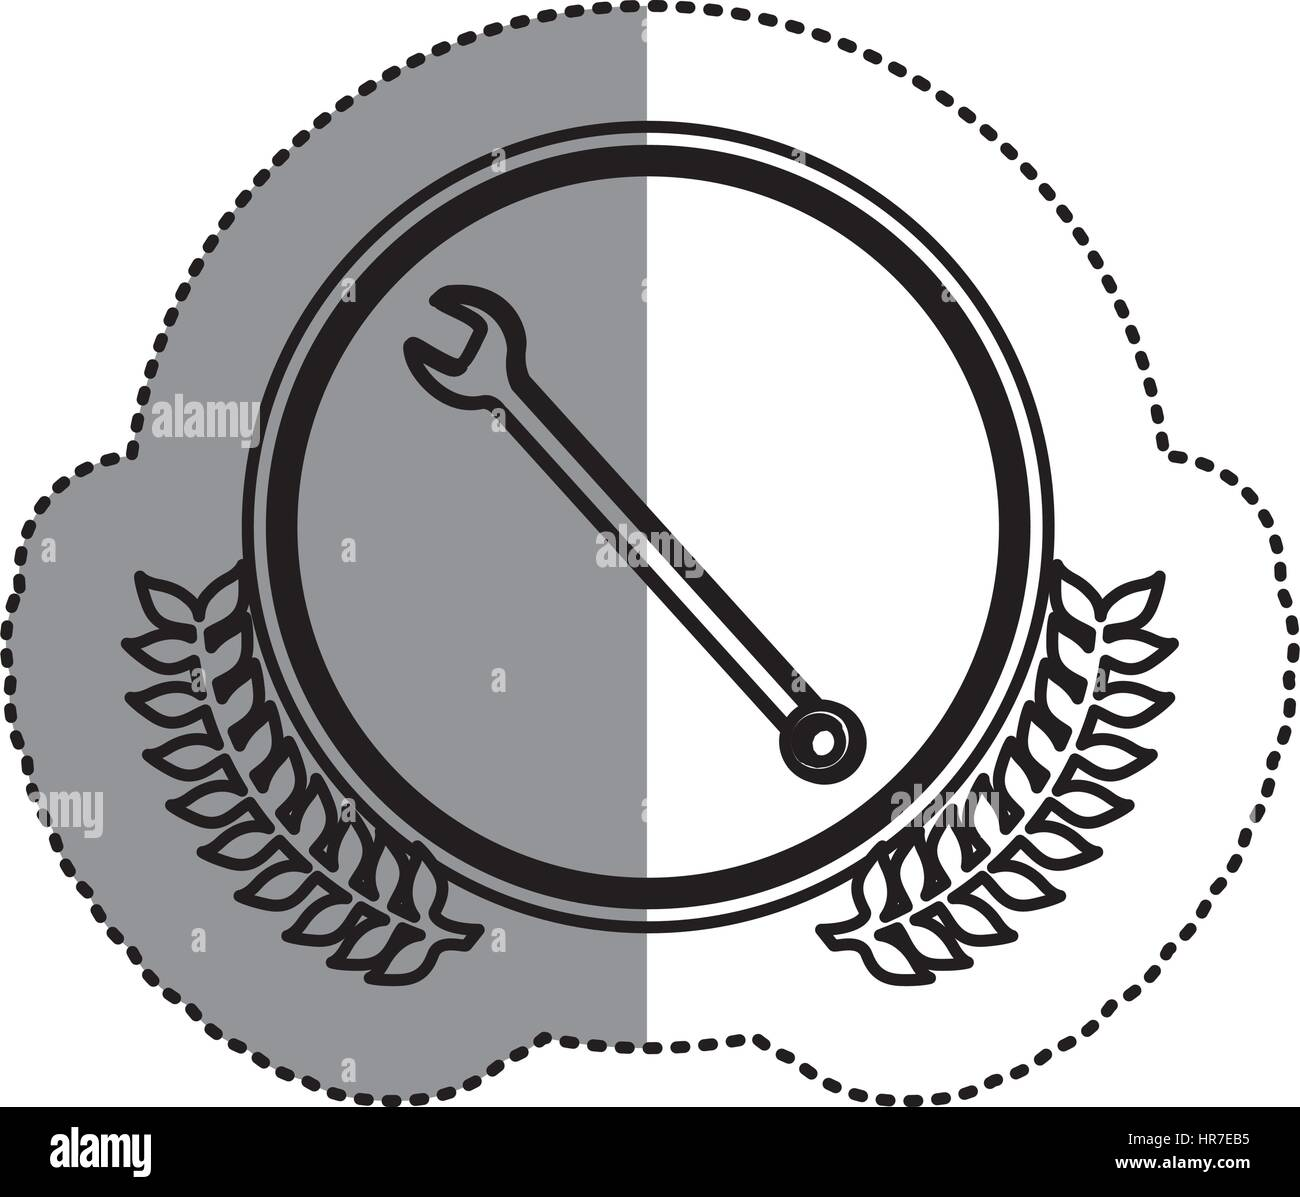 contour symbol wrench icon image - Stock Vector